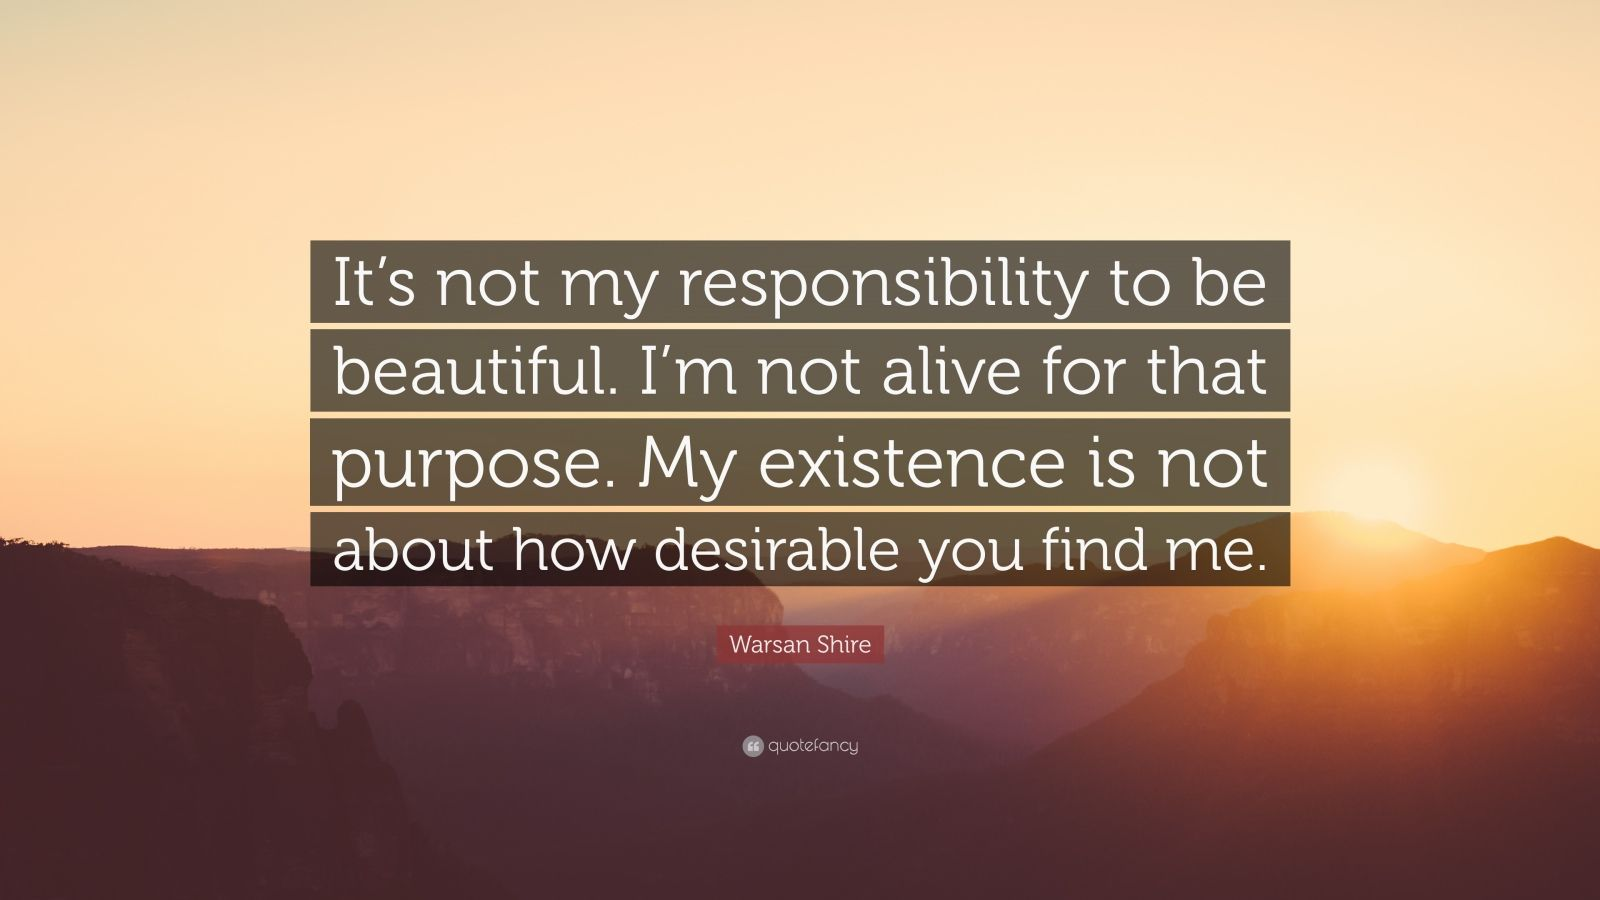 """Warsan Shire Quote: """"It's not my responsibility to be beautiful. I'm not alive for that purpose. My existence is not about how desirable you find me."""""""